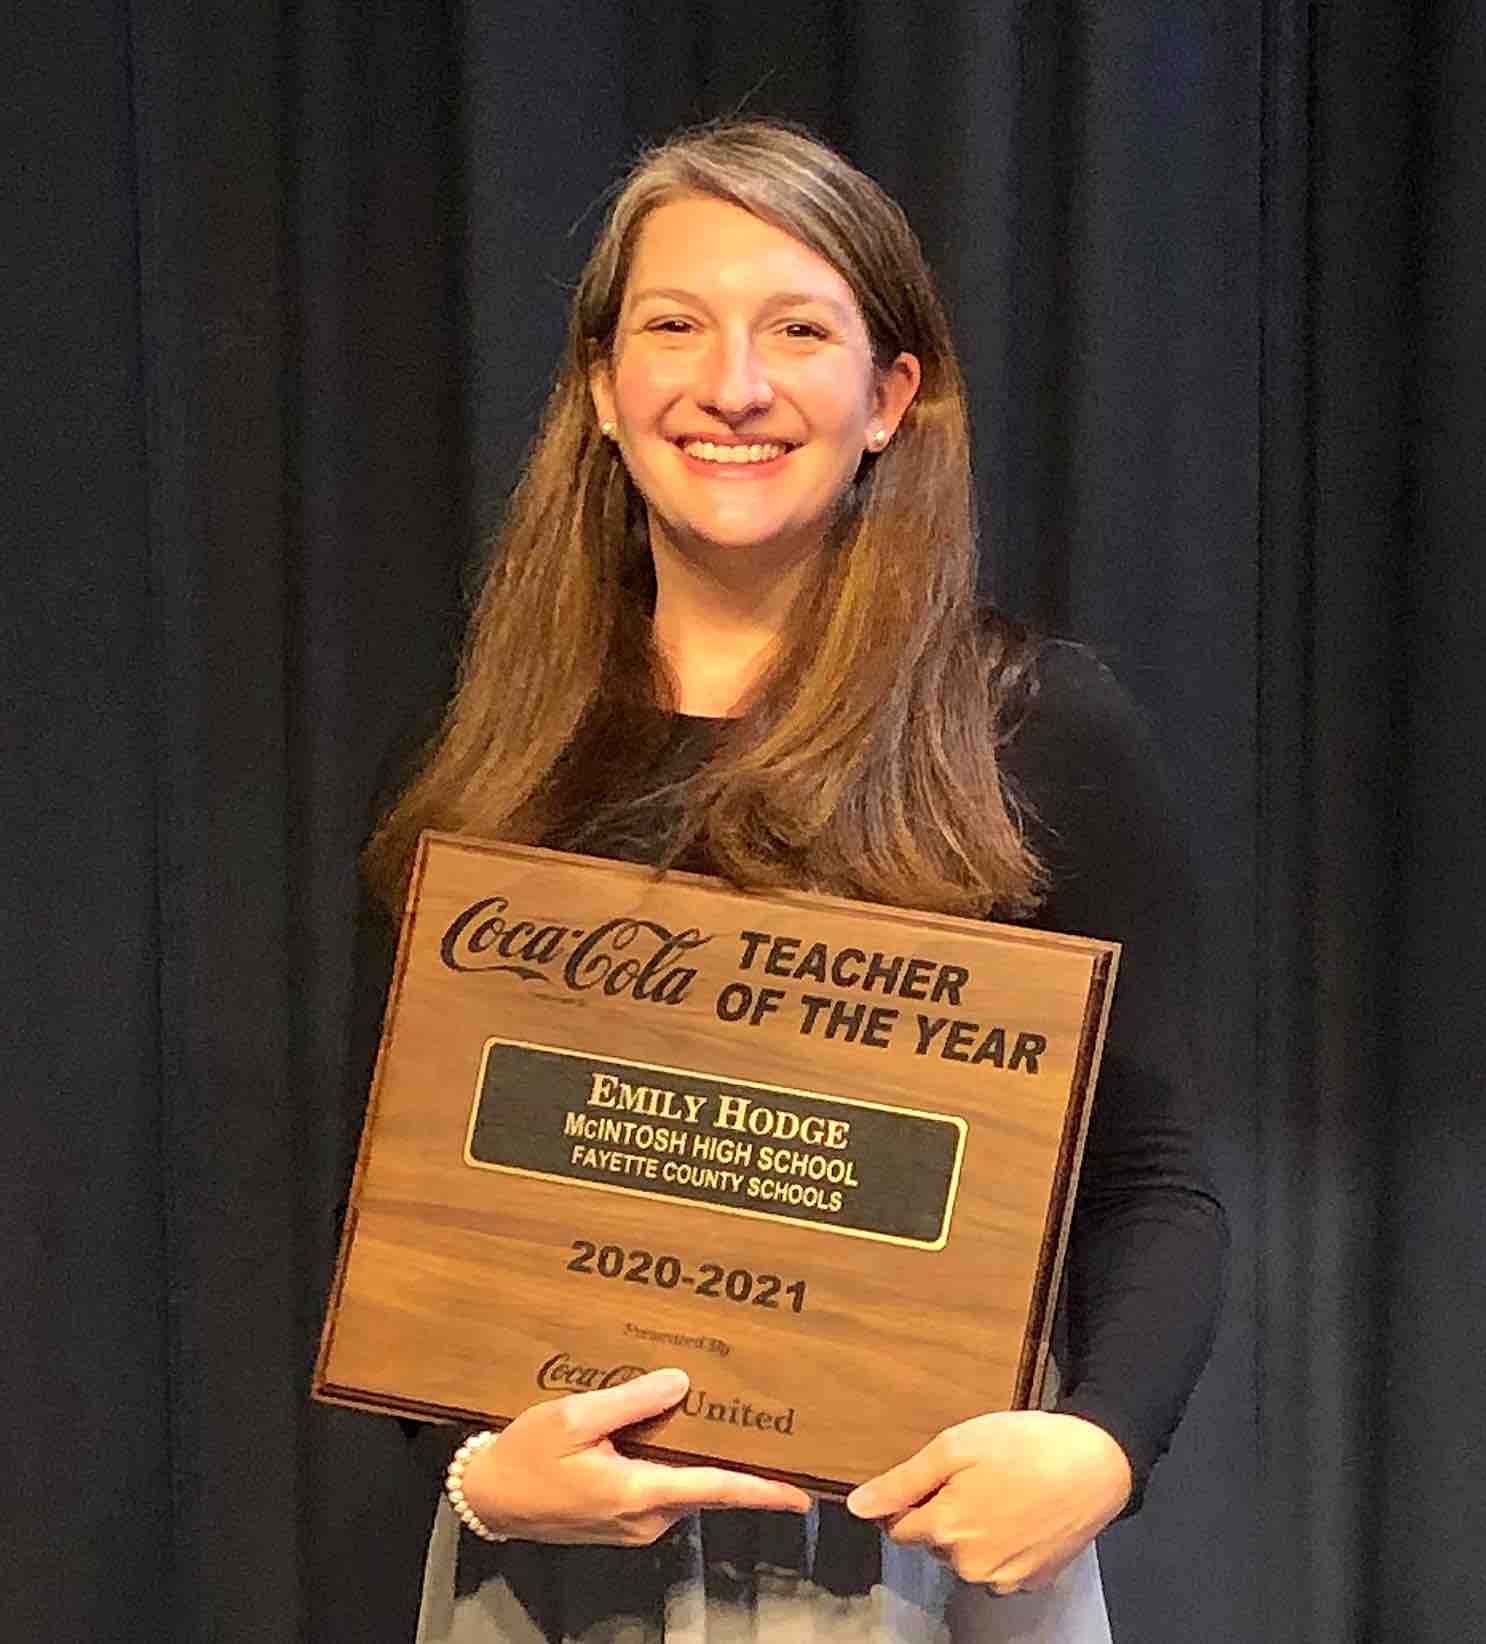 <b>McIntosh High's Emily Hodge makes history as the first media specialist ever named Fayette County Teacher of the Year. Photo/Fayette County School System.</b>